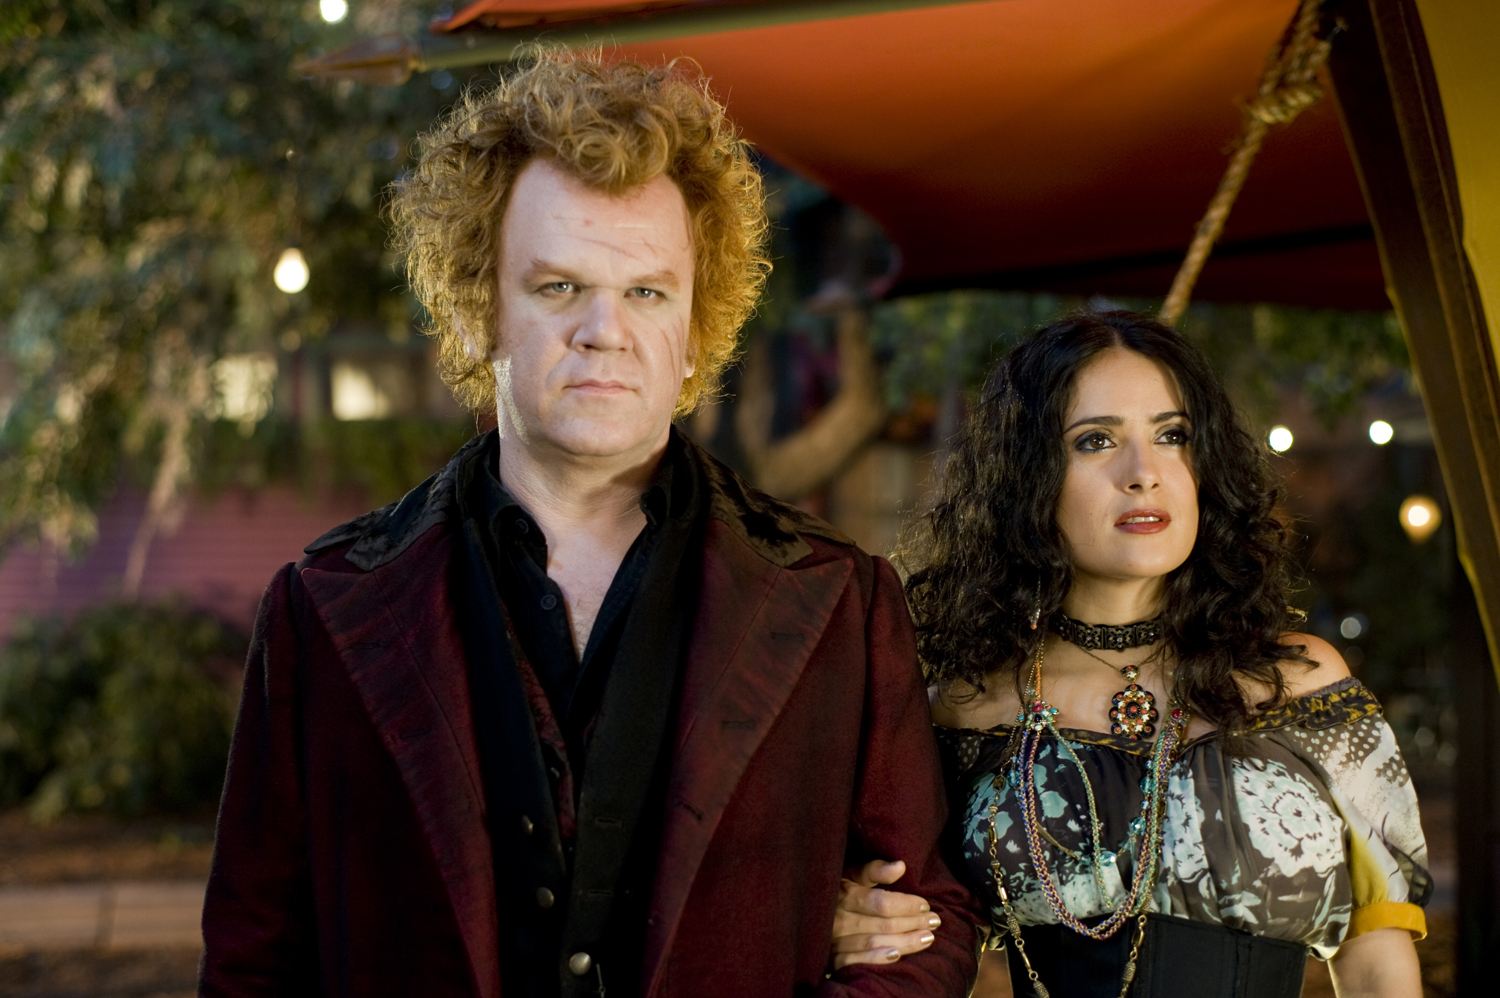 Larten Crepsley (John C. Reilly) and Madame Truska (Salma Hayek) in Cirque du Freak: The Vampire's Assistant (2009)